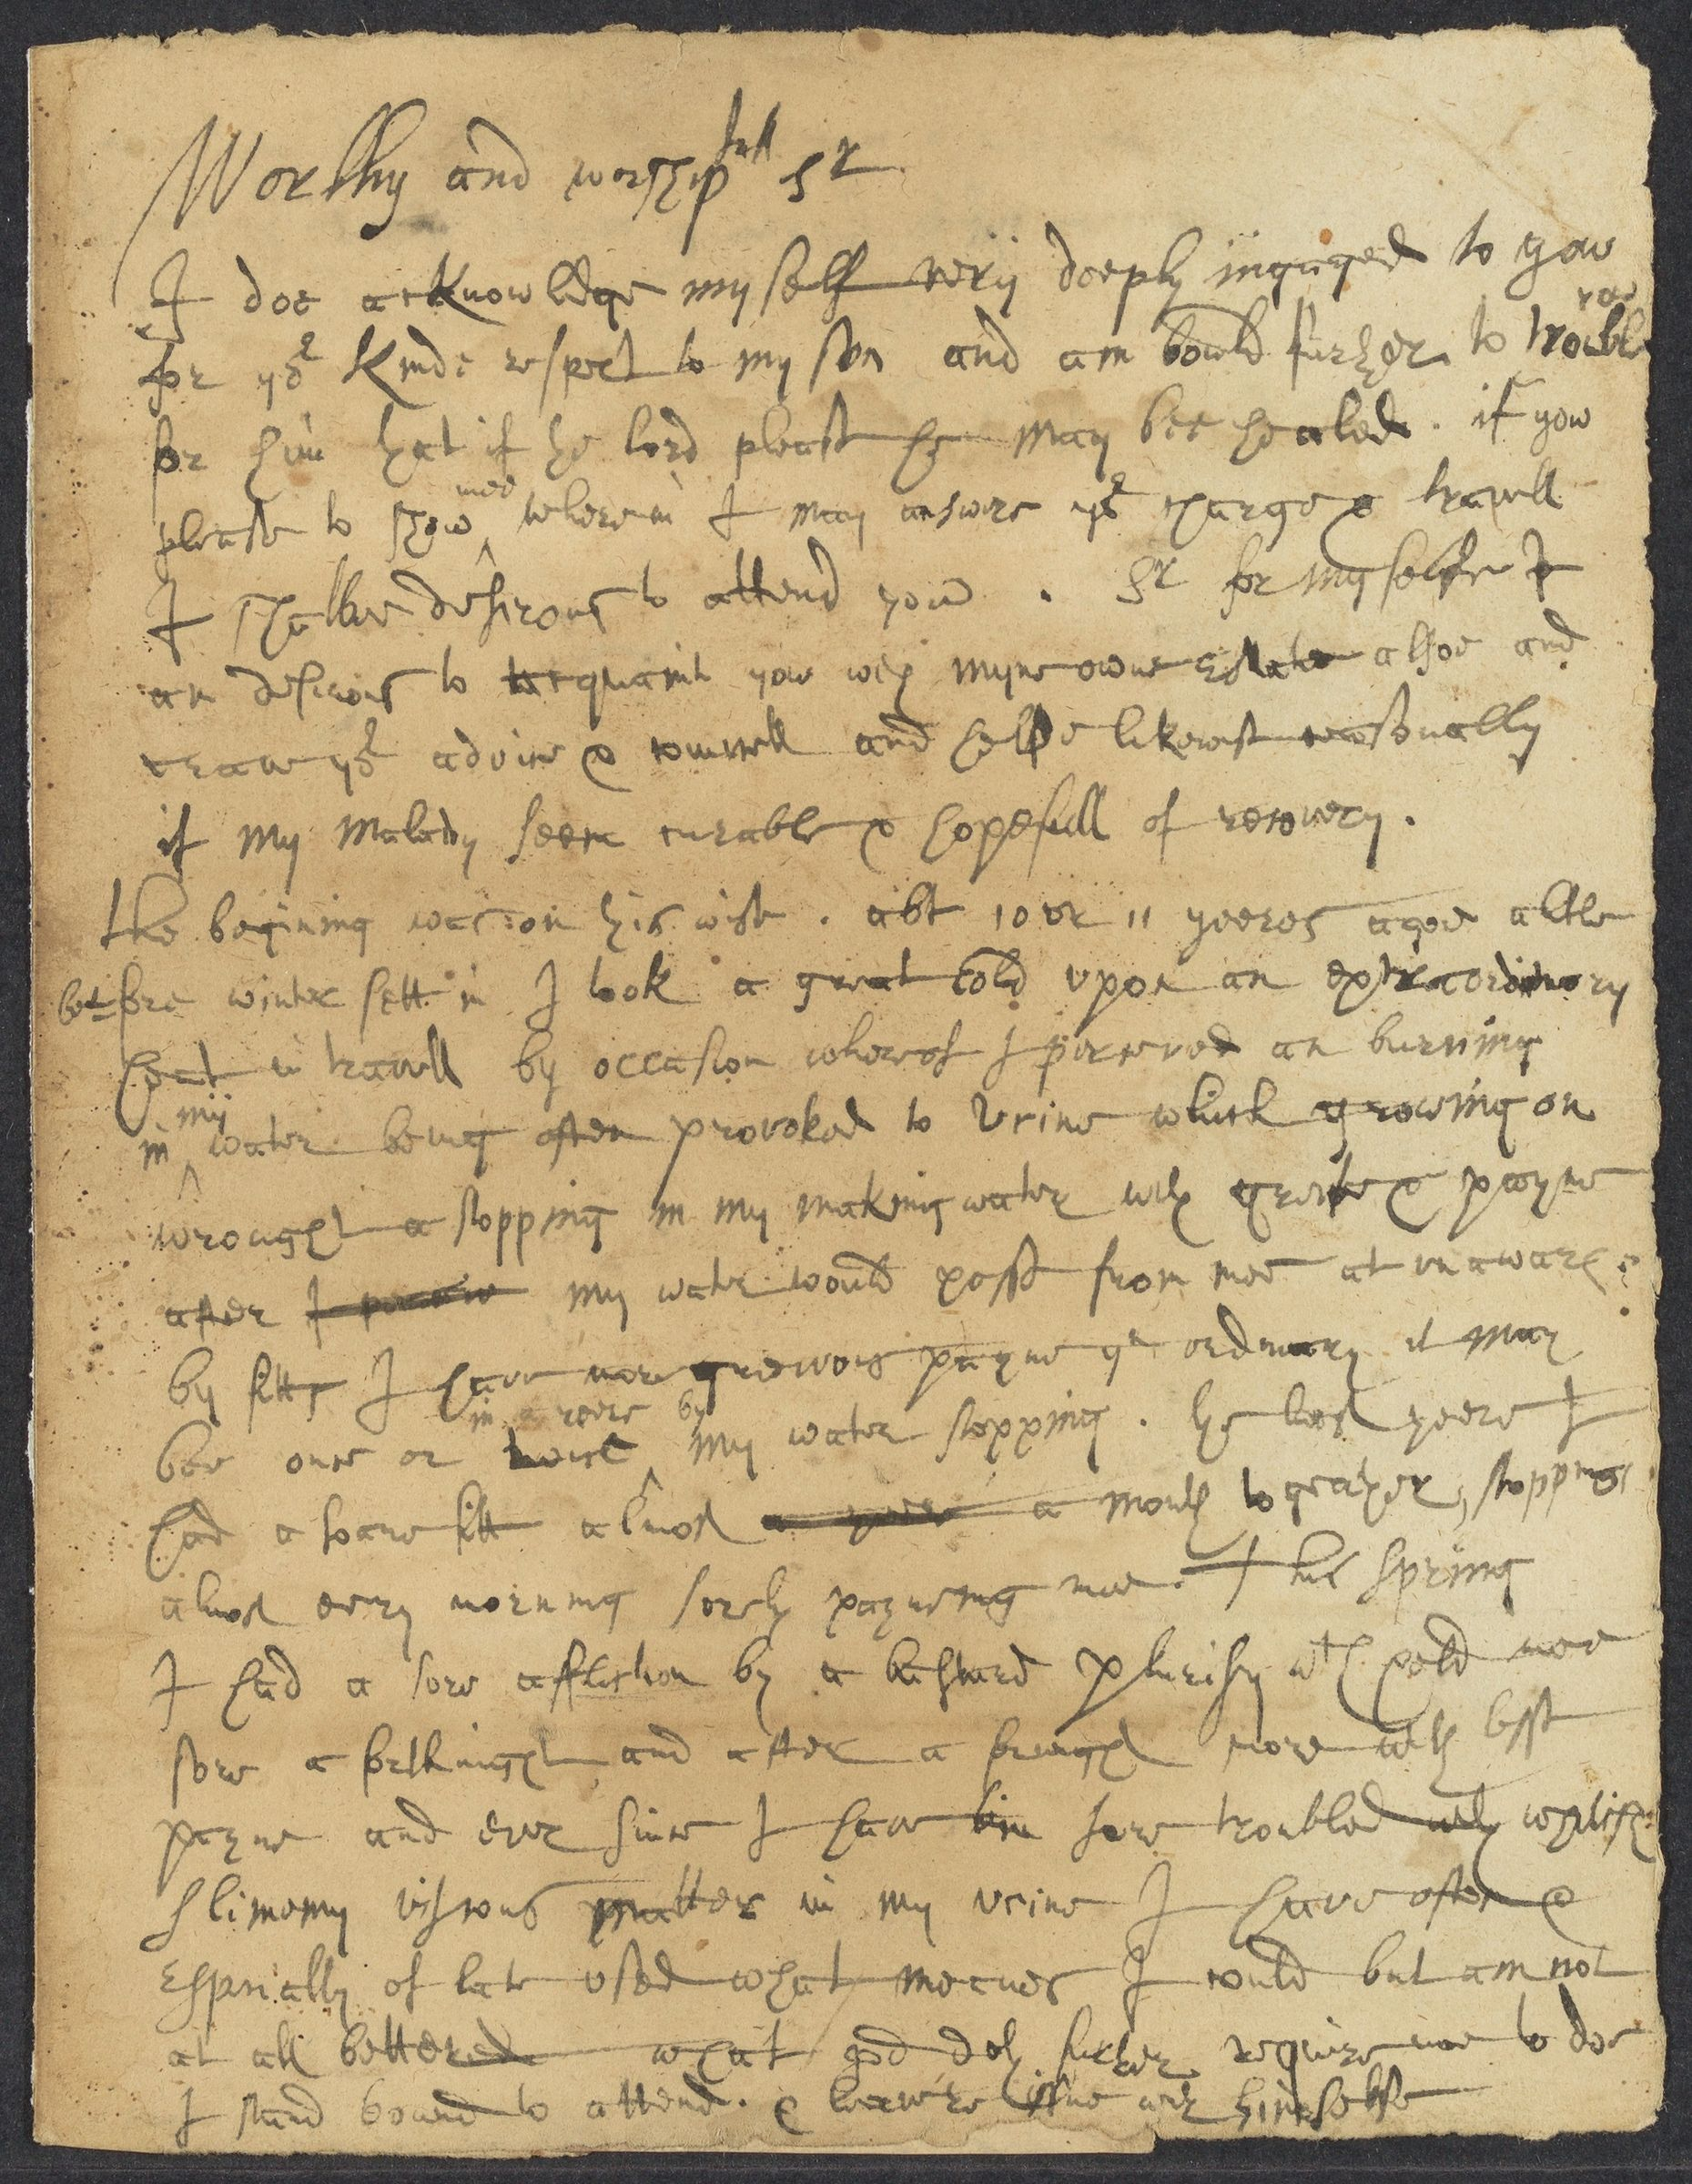 Ward, George, autographed letter signed to John Winthrop; Brainford, 1 side (3 pages), 1652 June 15